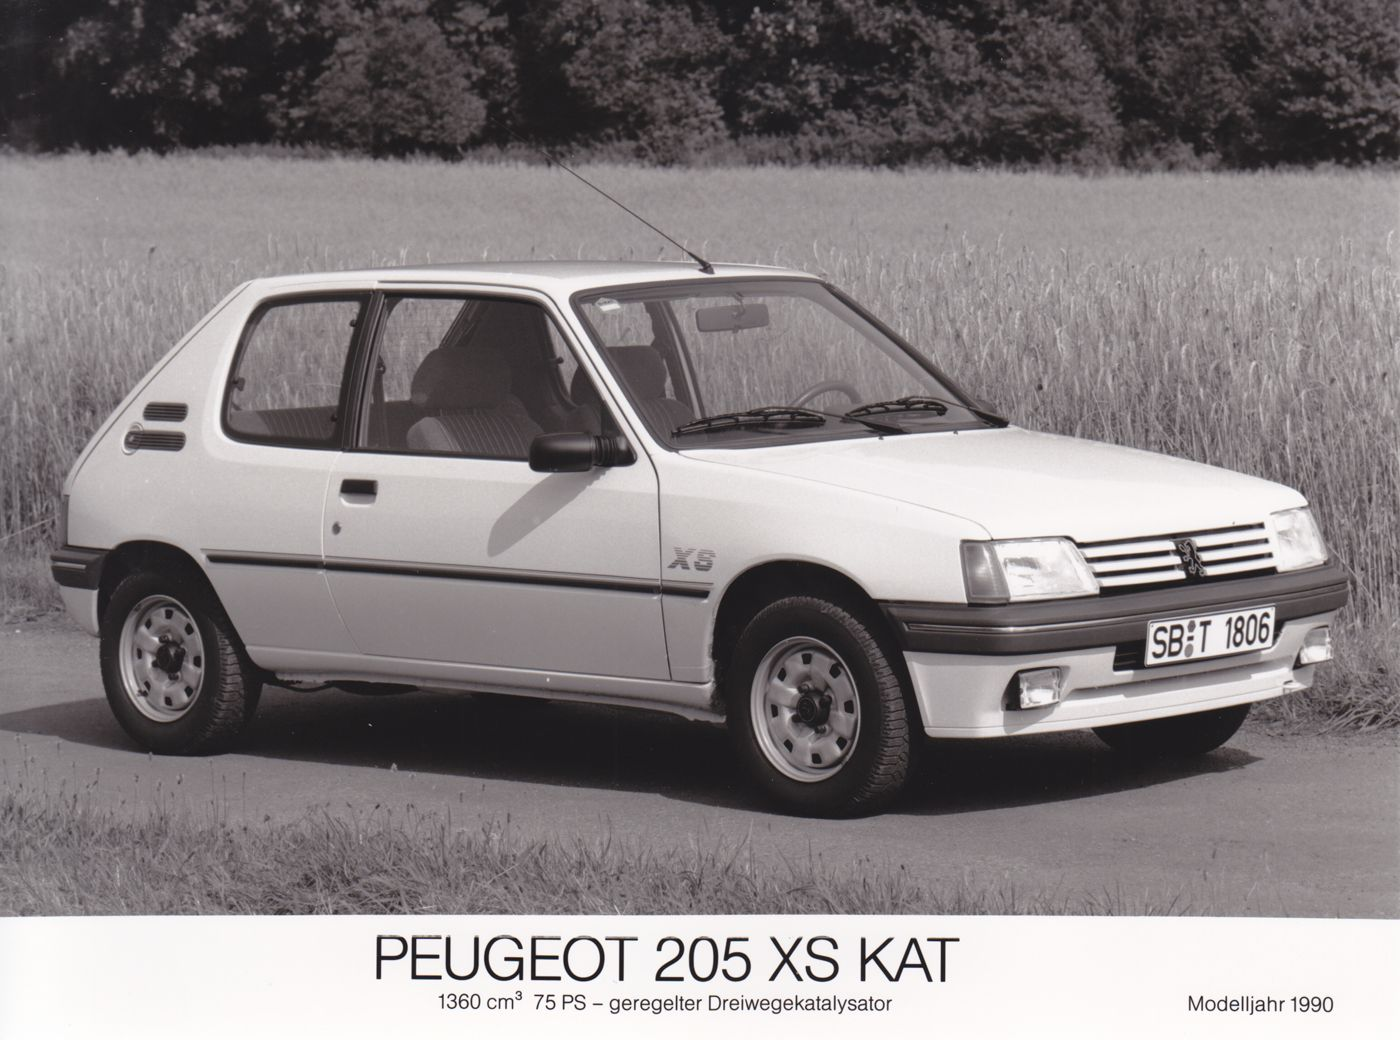 peugeot 205 xs kat 1990 car factory press photos pinterest peugeot and cars. Black Bedroom Furniture Sets. Home Design Ideas